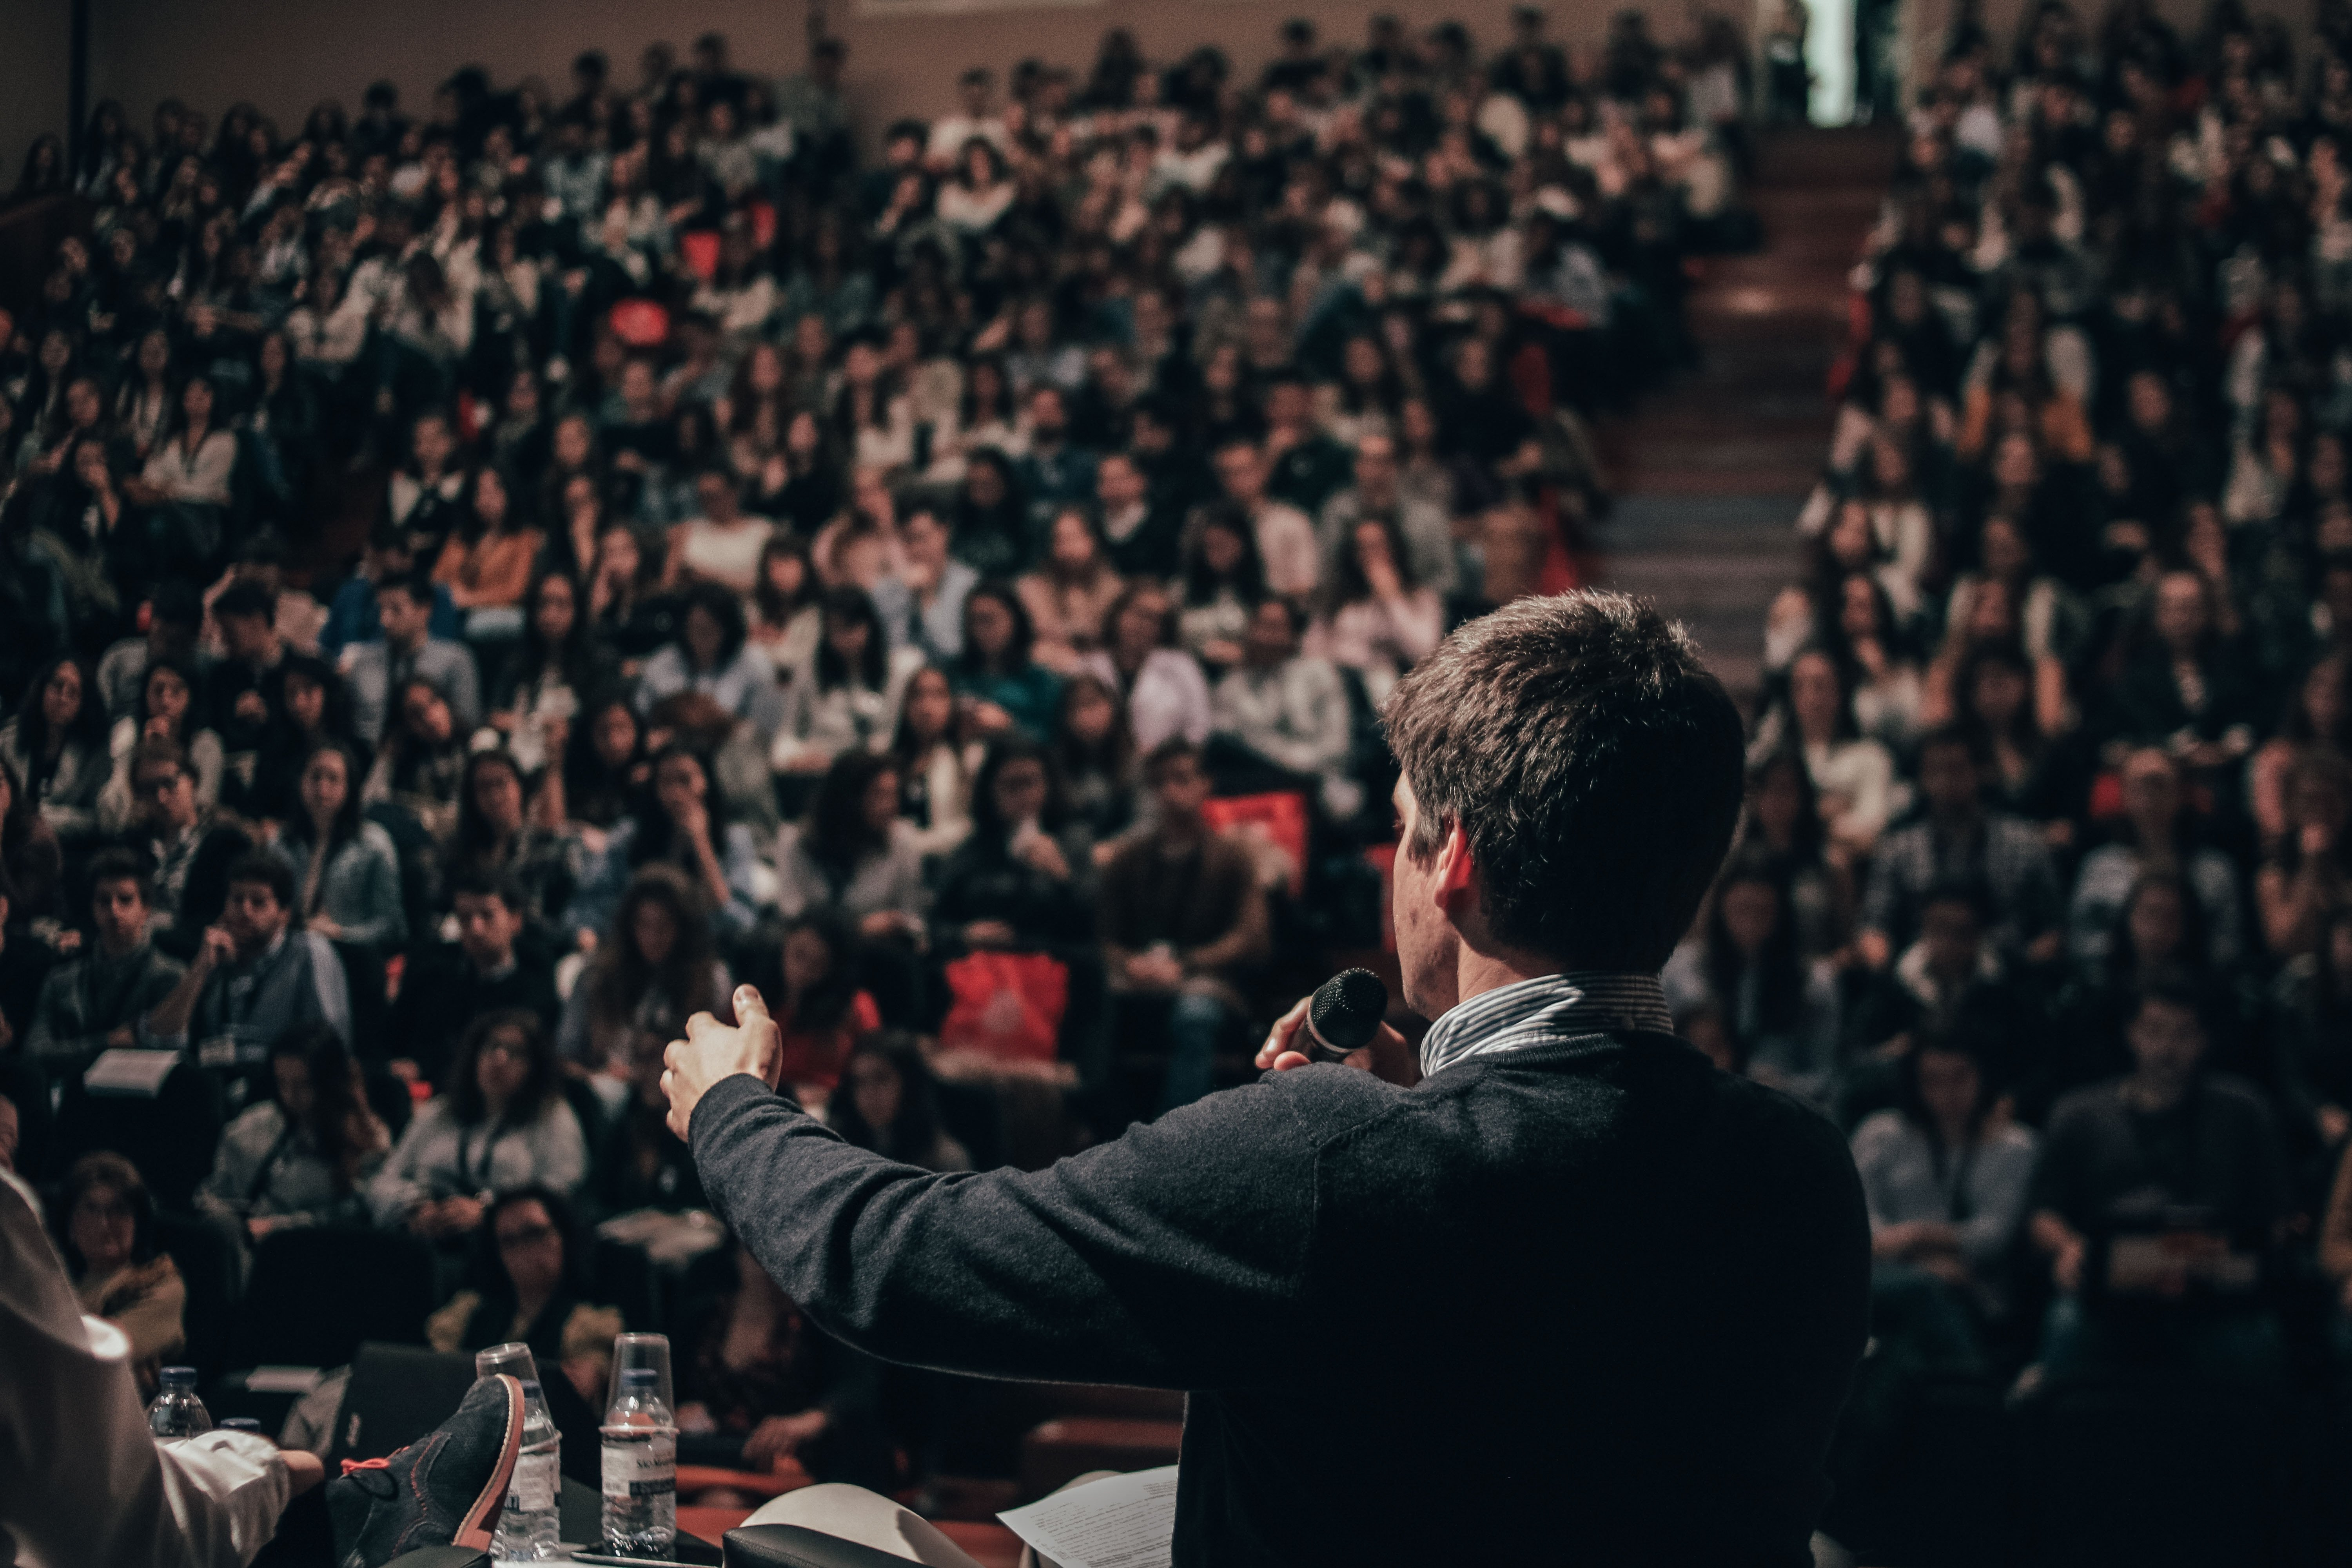 Man speaking in front of an audience. | Source: Unsplash